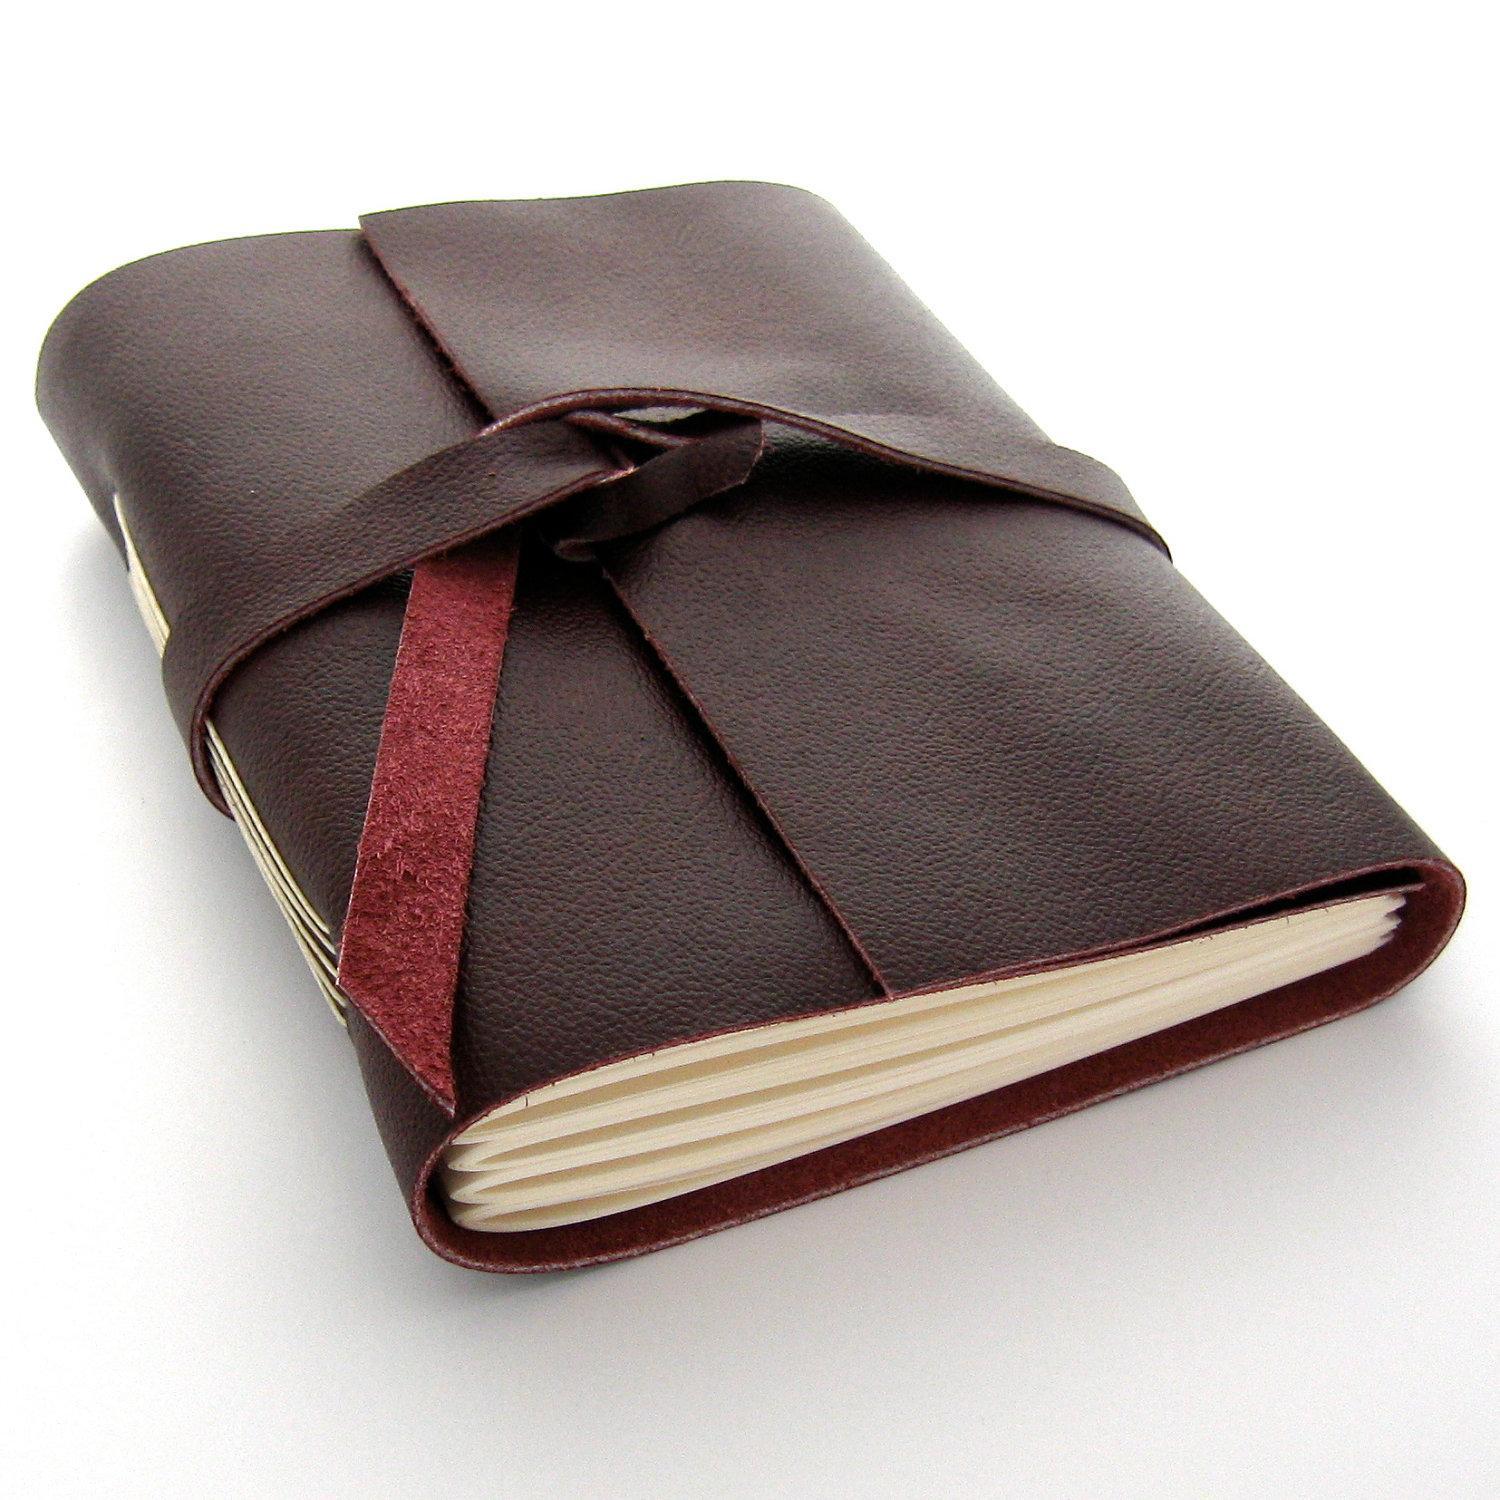 Handmade Leather Journal and Sketchbook in by peaseblossomstudio